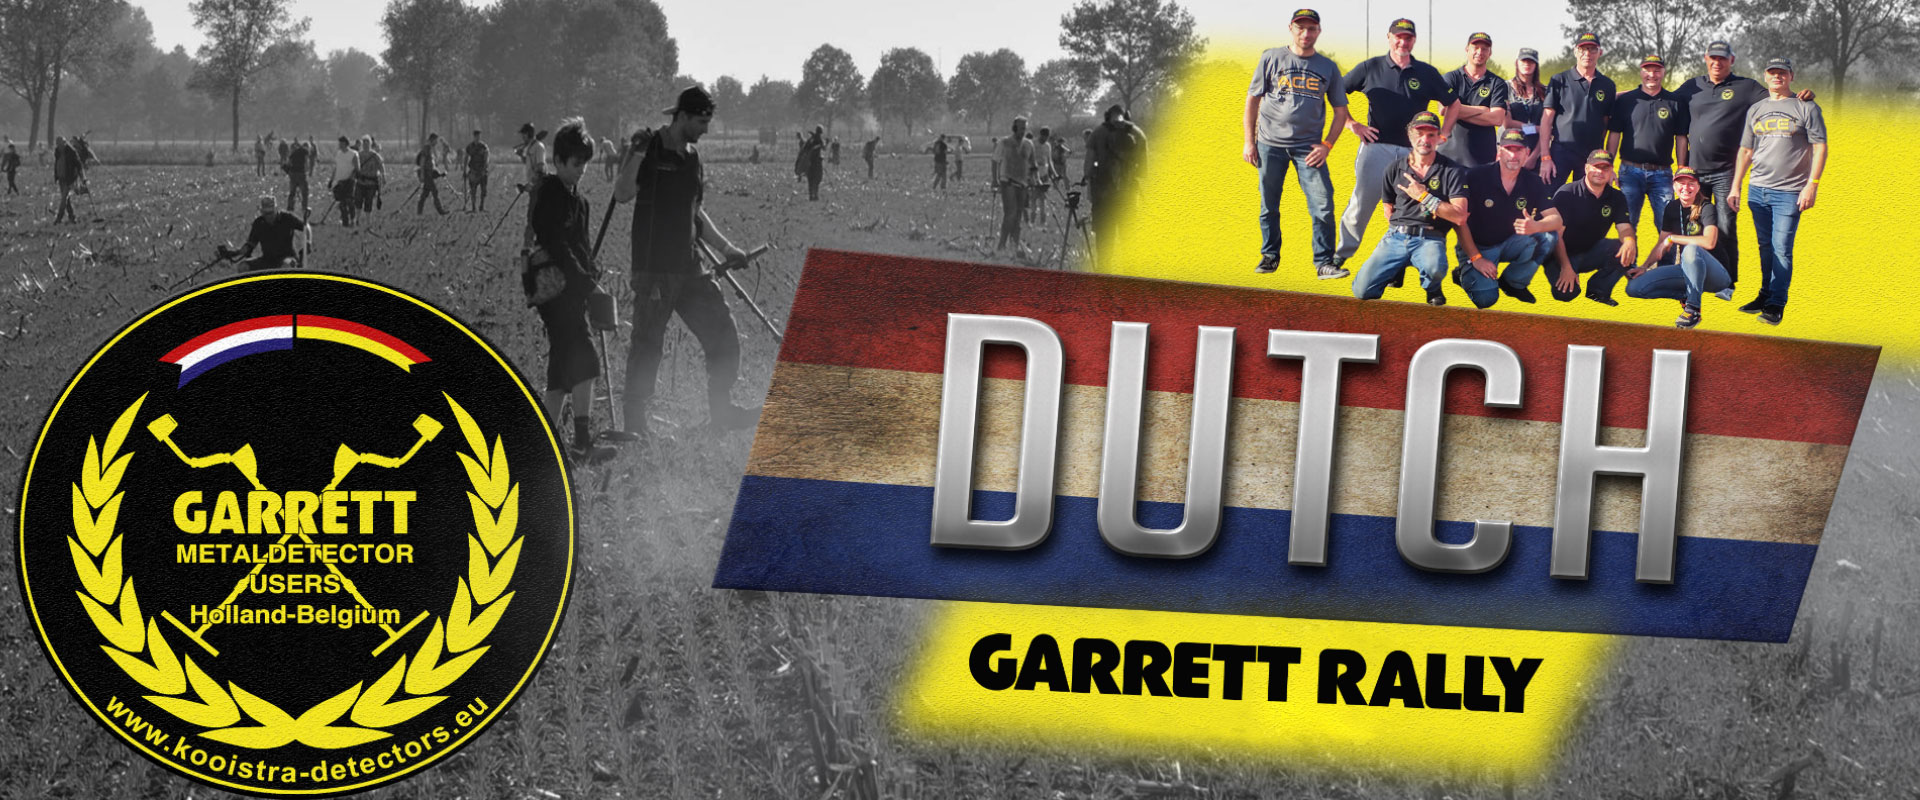 header dutch garrett rally